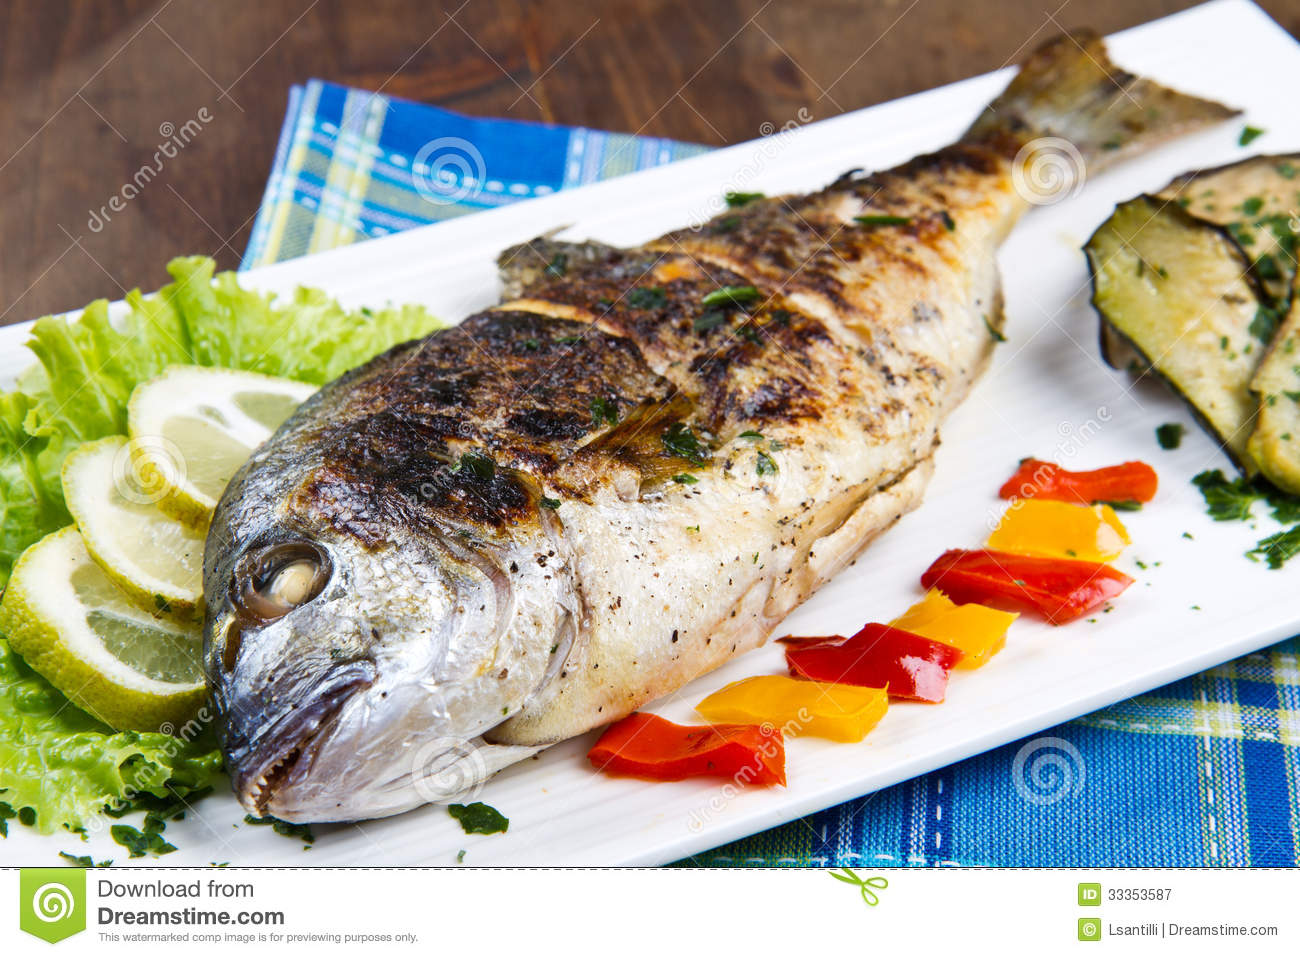 ... : Grilled gilt head sea bream on plate with lemon ,salad and grill